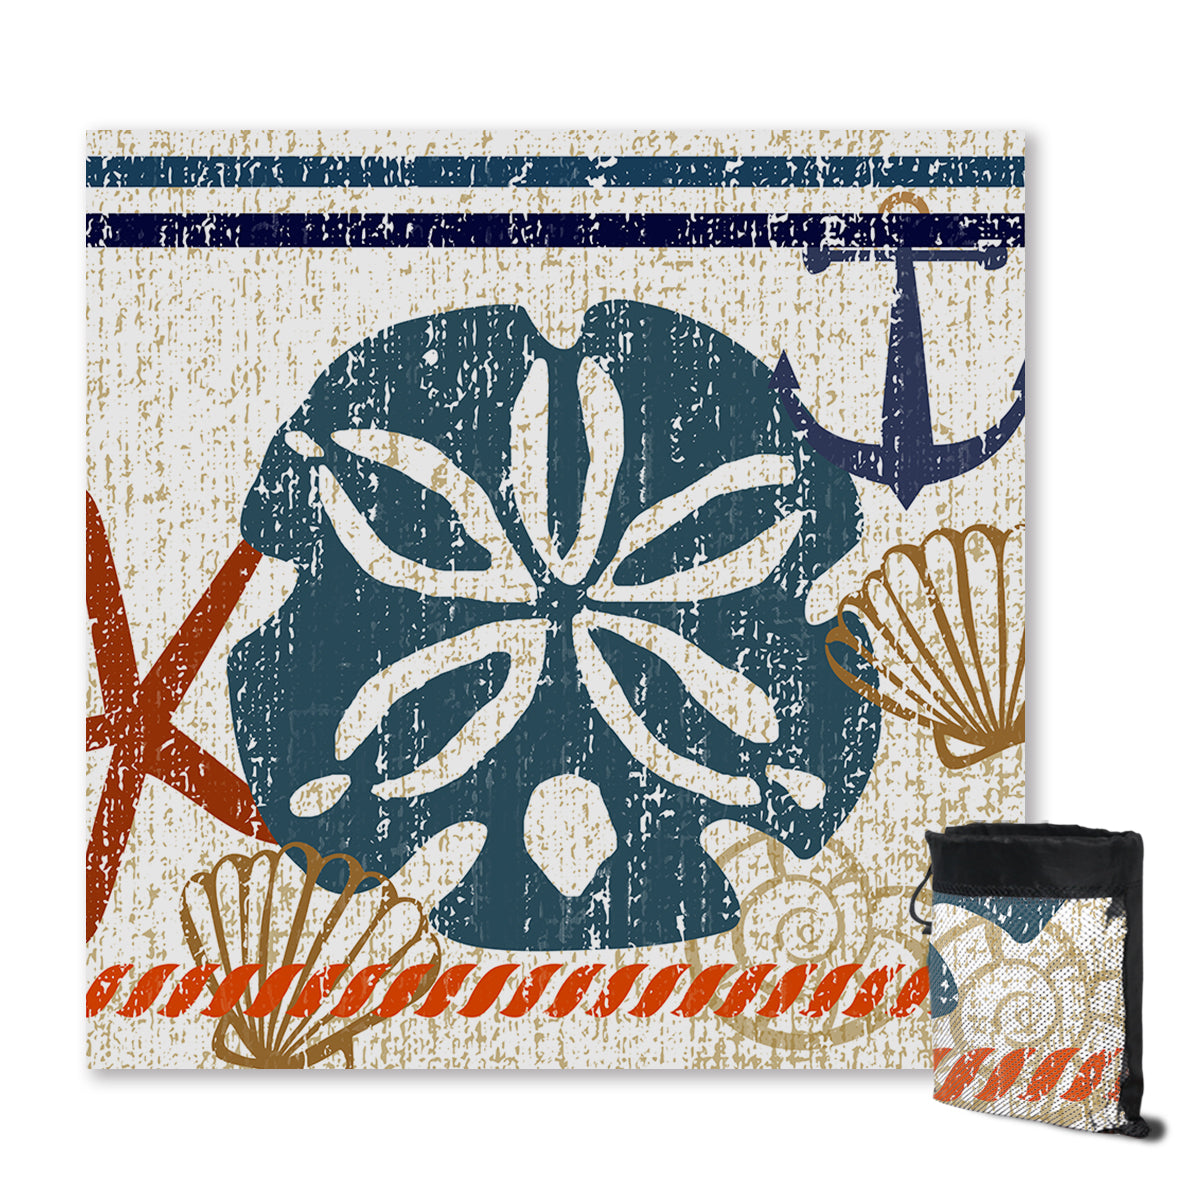 Beachy Sand Dollar Sand Free Towel